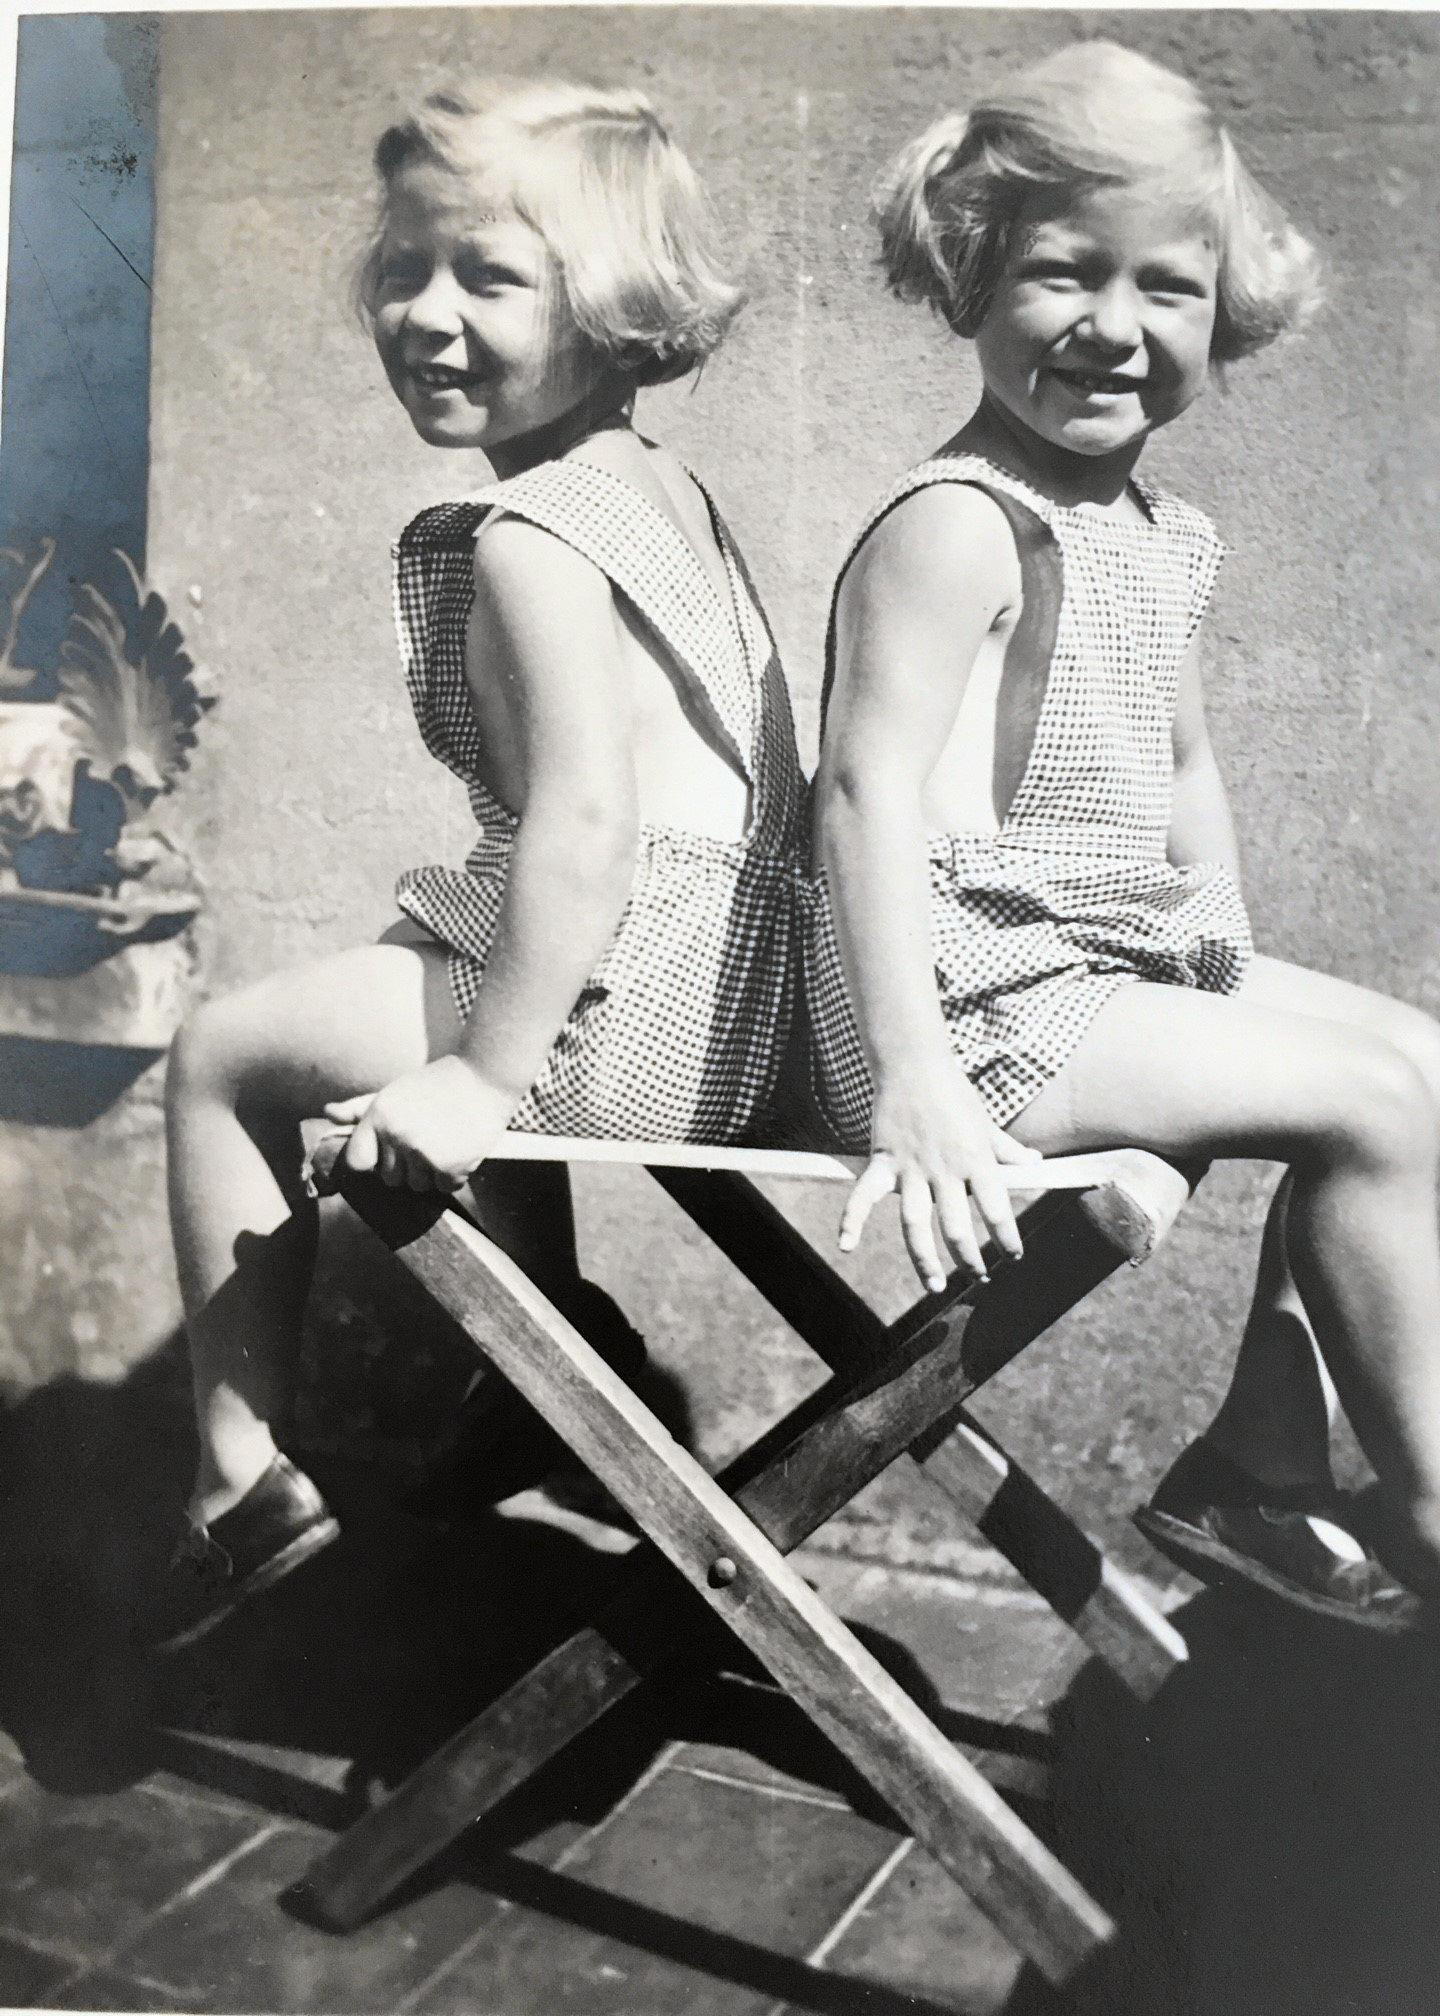 FAMILY MEMORIES: Identical twins Katie and Pamela Tydeman in younger days.